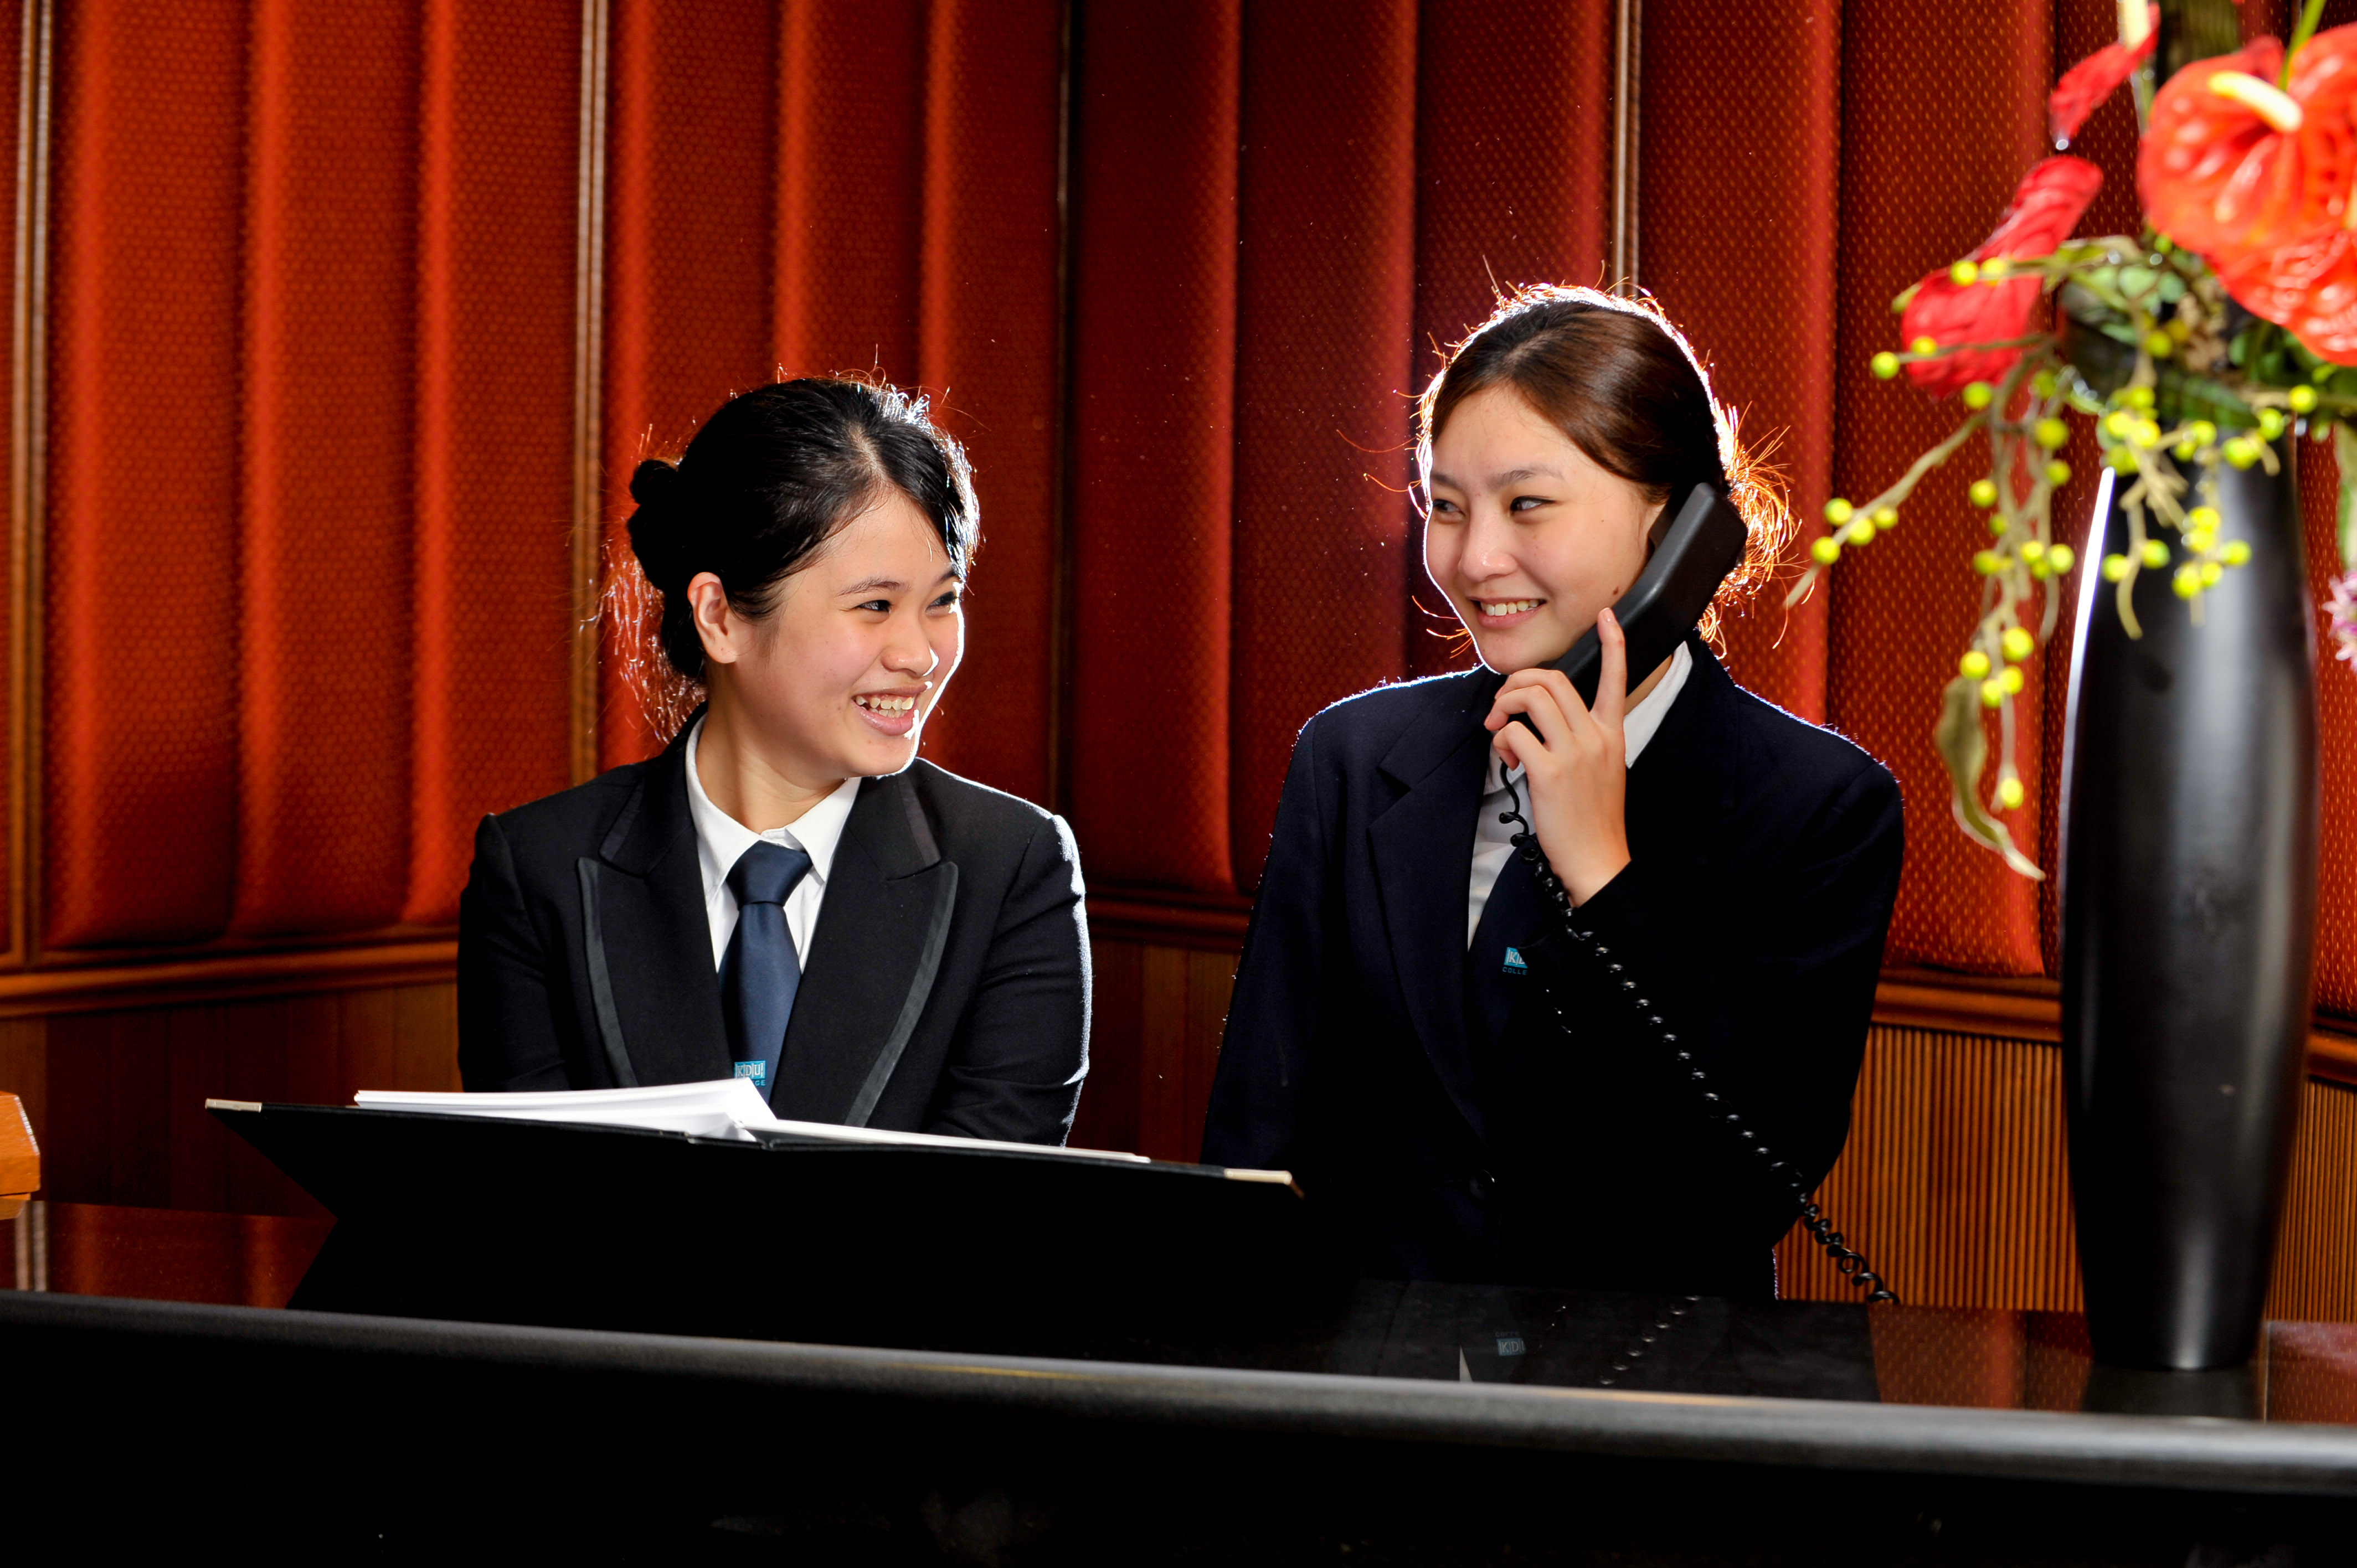 Hotel and Hospitality Management colleges for communications major